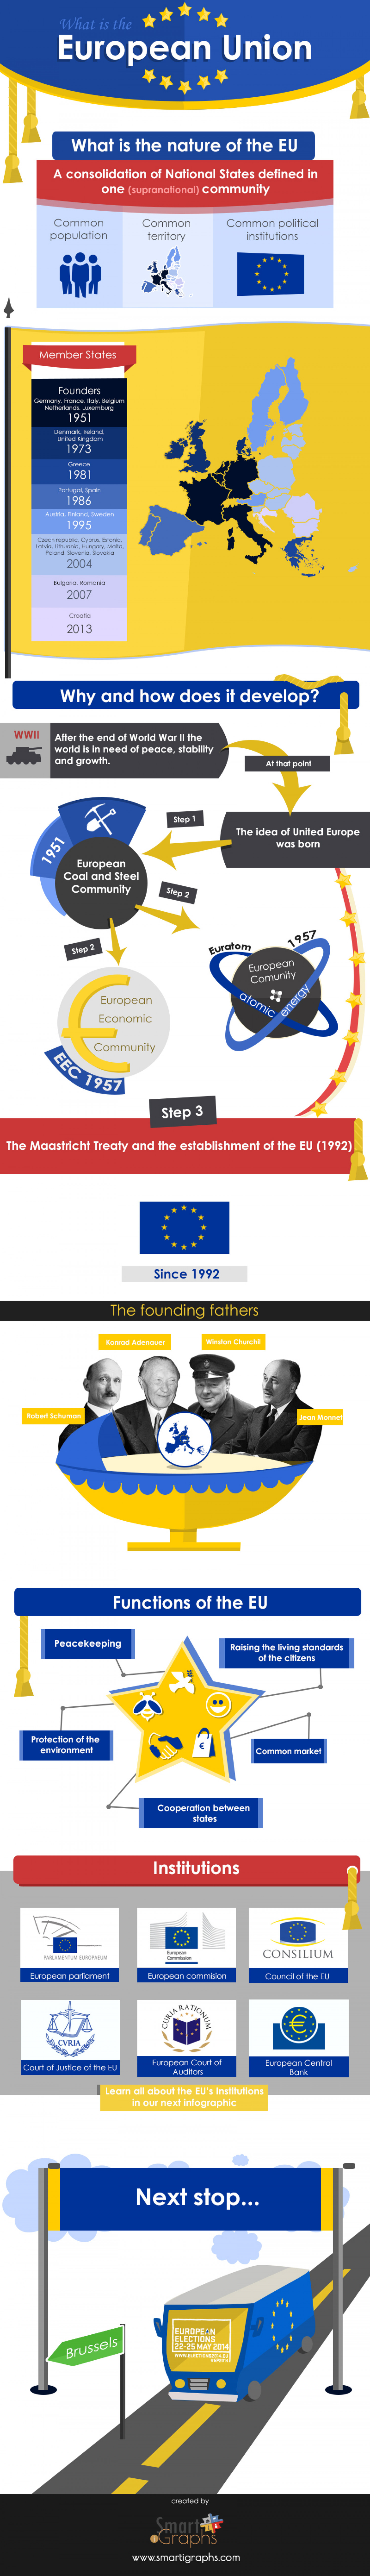 European Union Elections 2014 Infographic